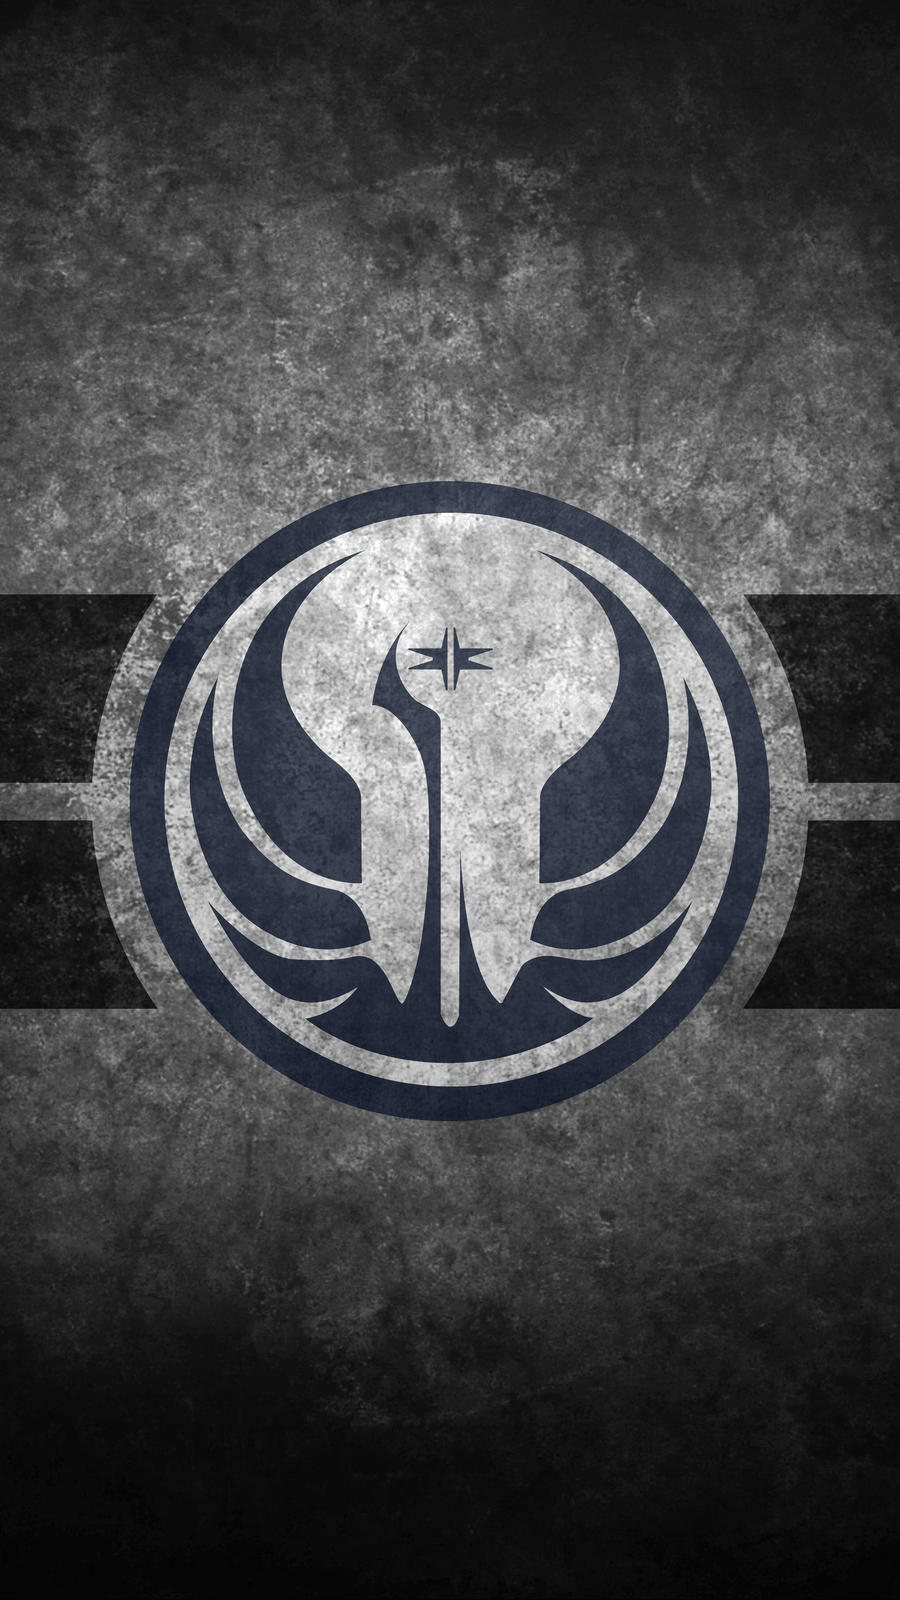 Galactic republic symbol cellular wallpaper by swmand4 on deviantart star wars old republic symbol cellphone wallpaper by swmand4 buycottarizona Choice Image